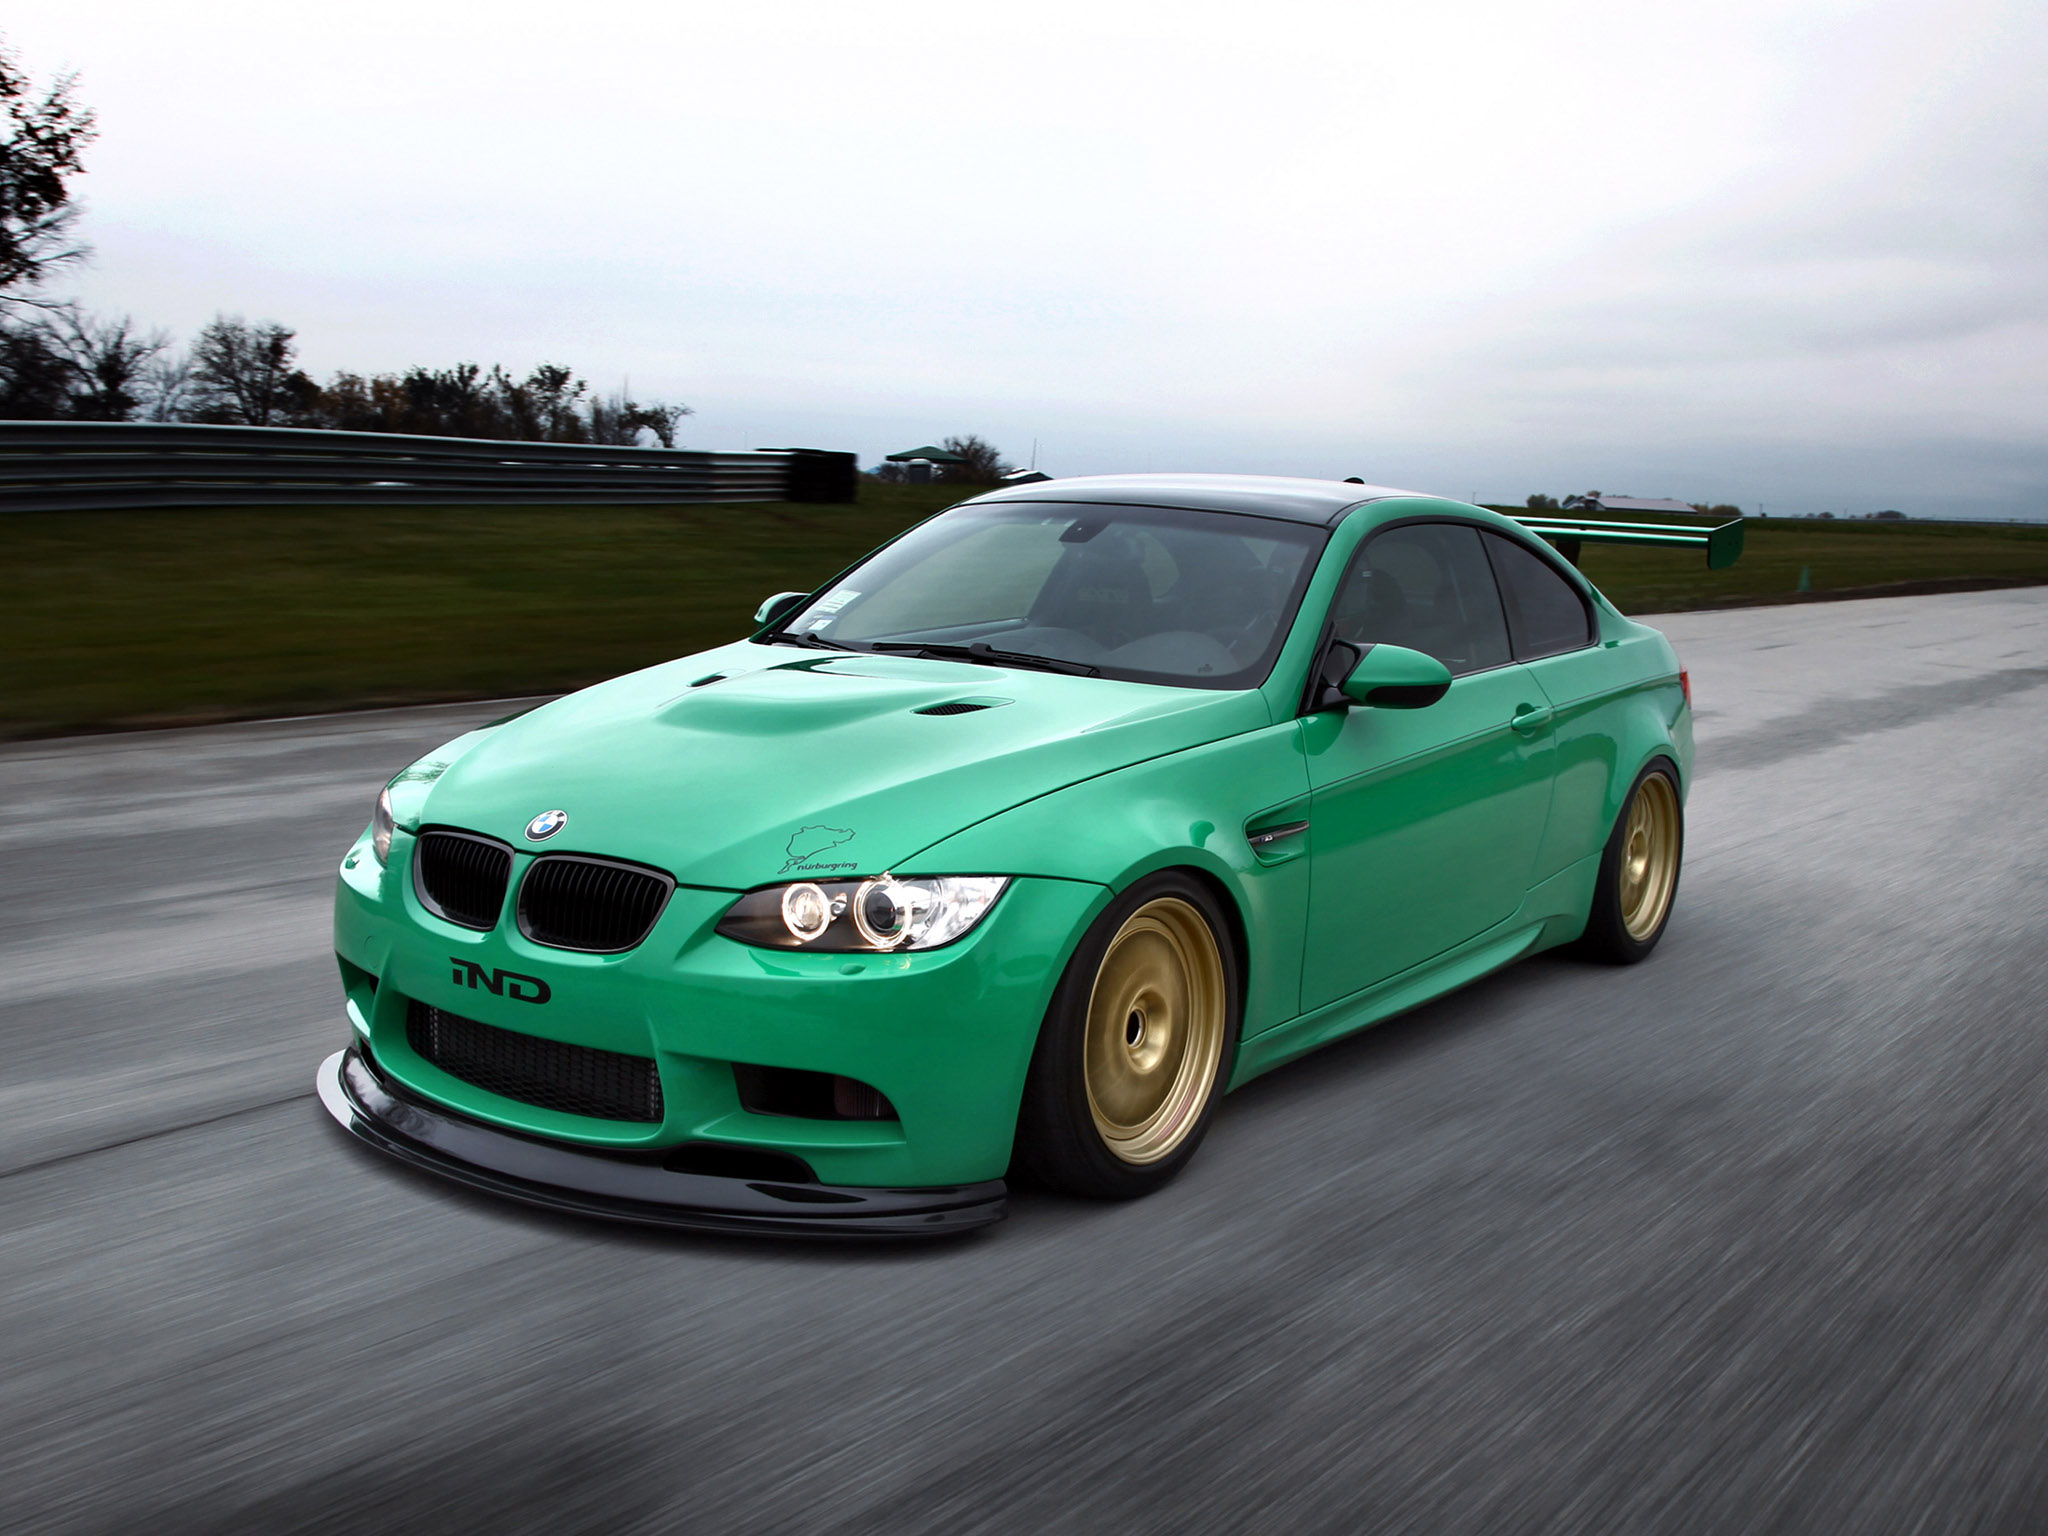 bmw m3 coupe green - photo #3